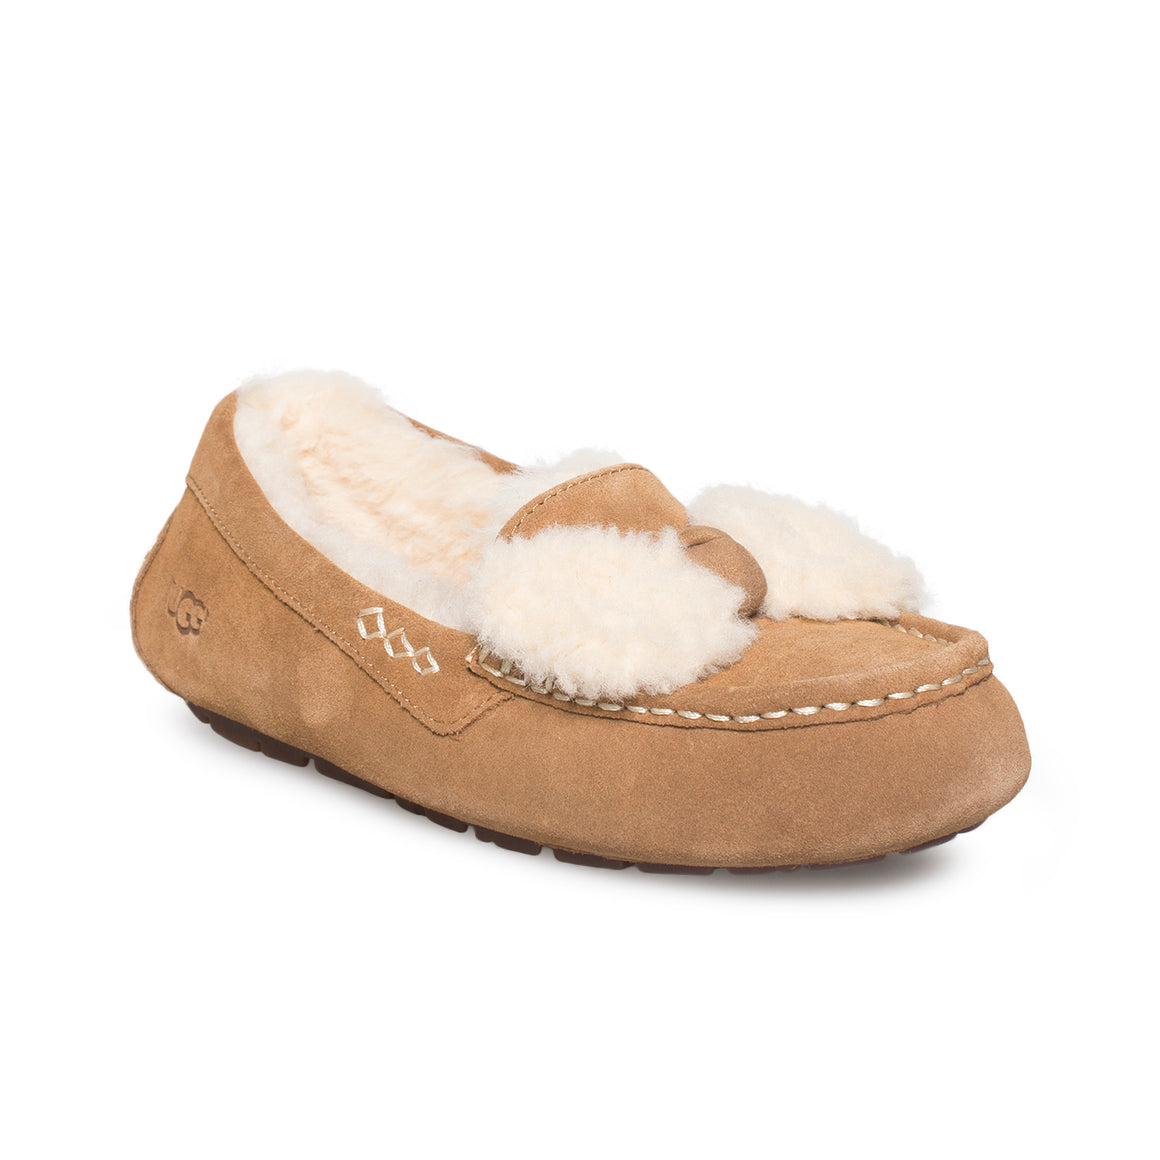 UGG Ansley Fur Bow Chestnut Slippers